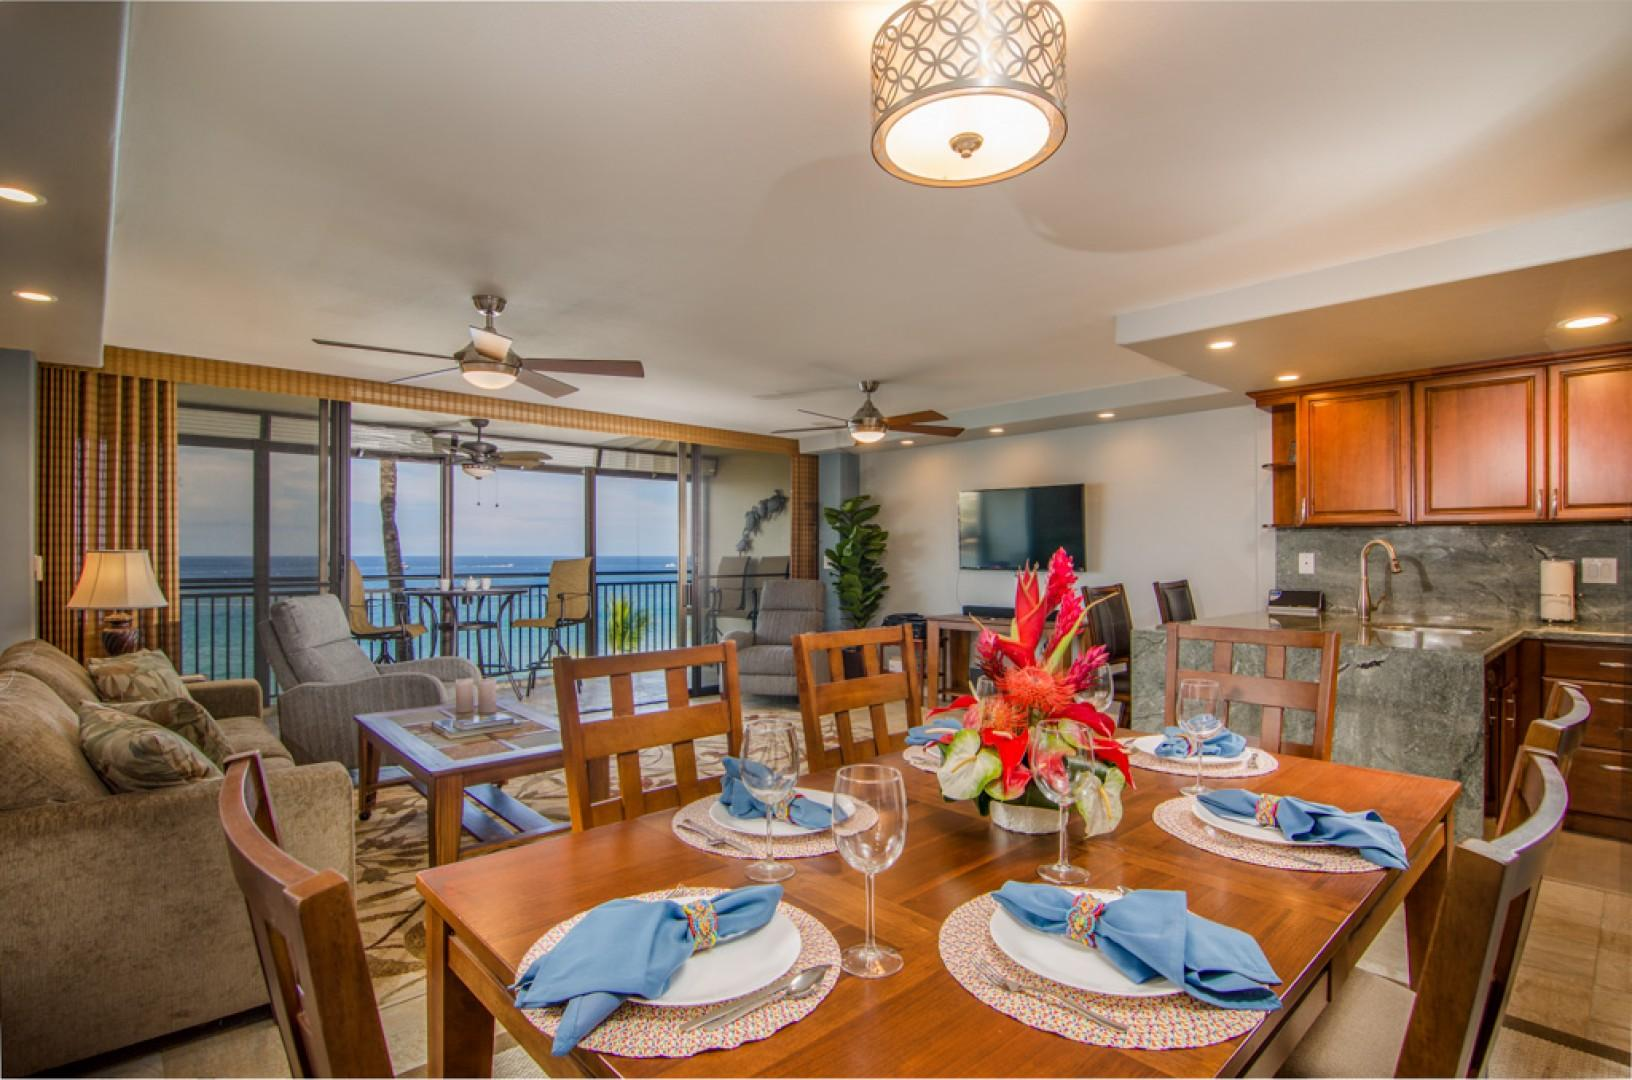 Enjoy a home cooked meal at this large dining table.